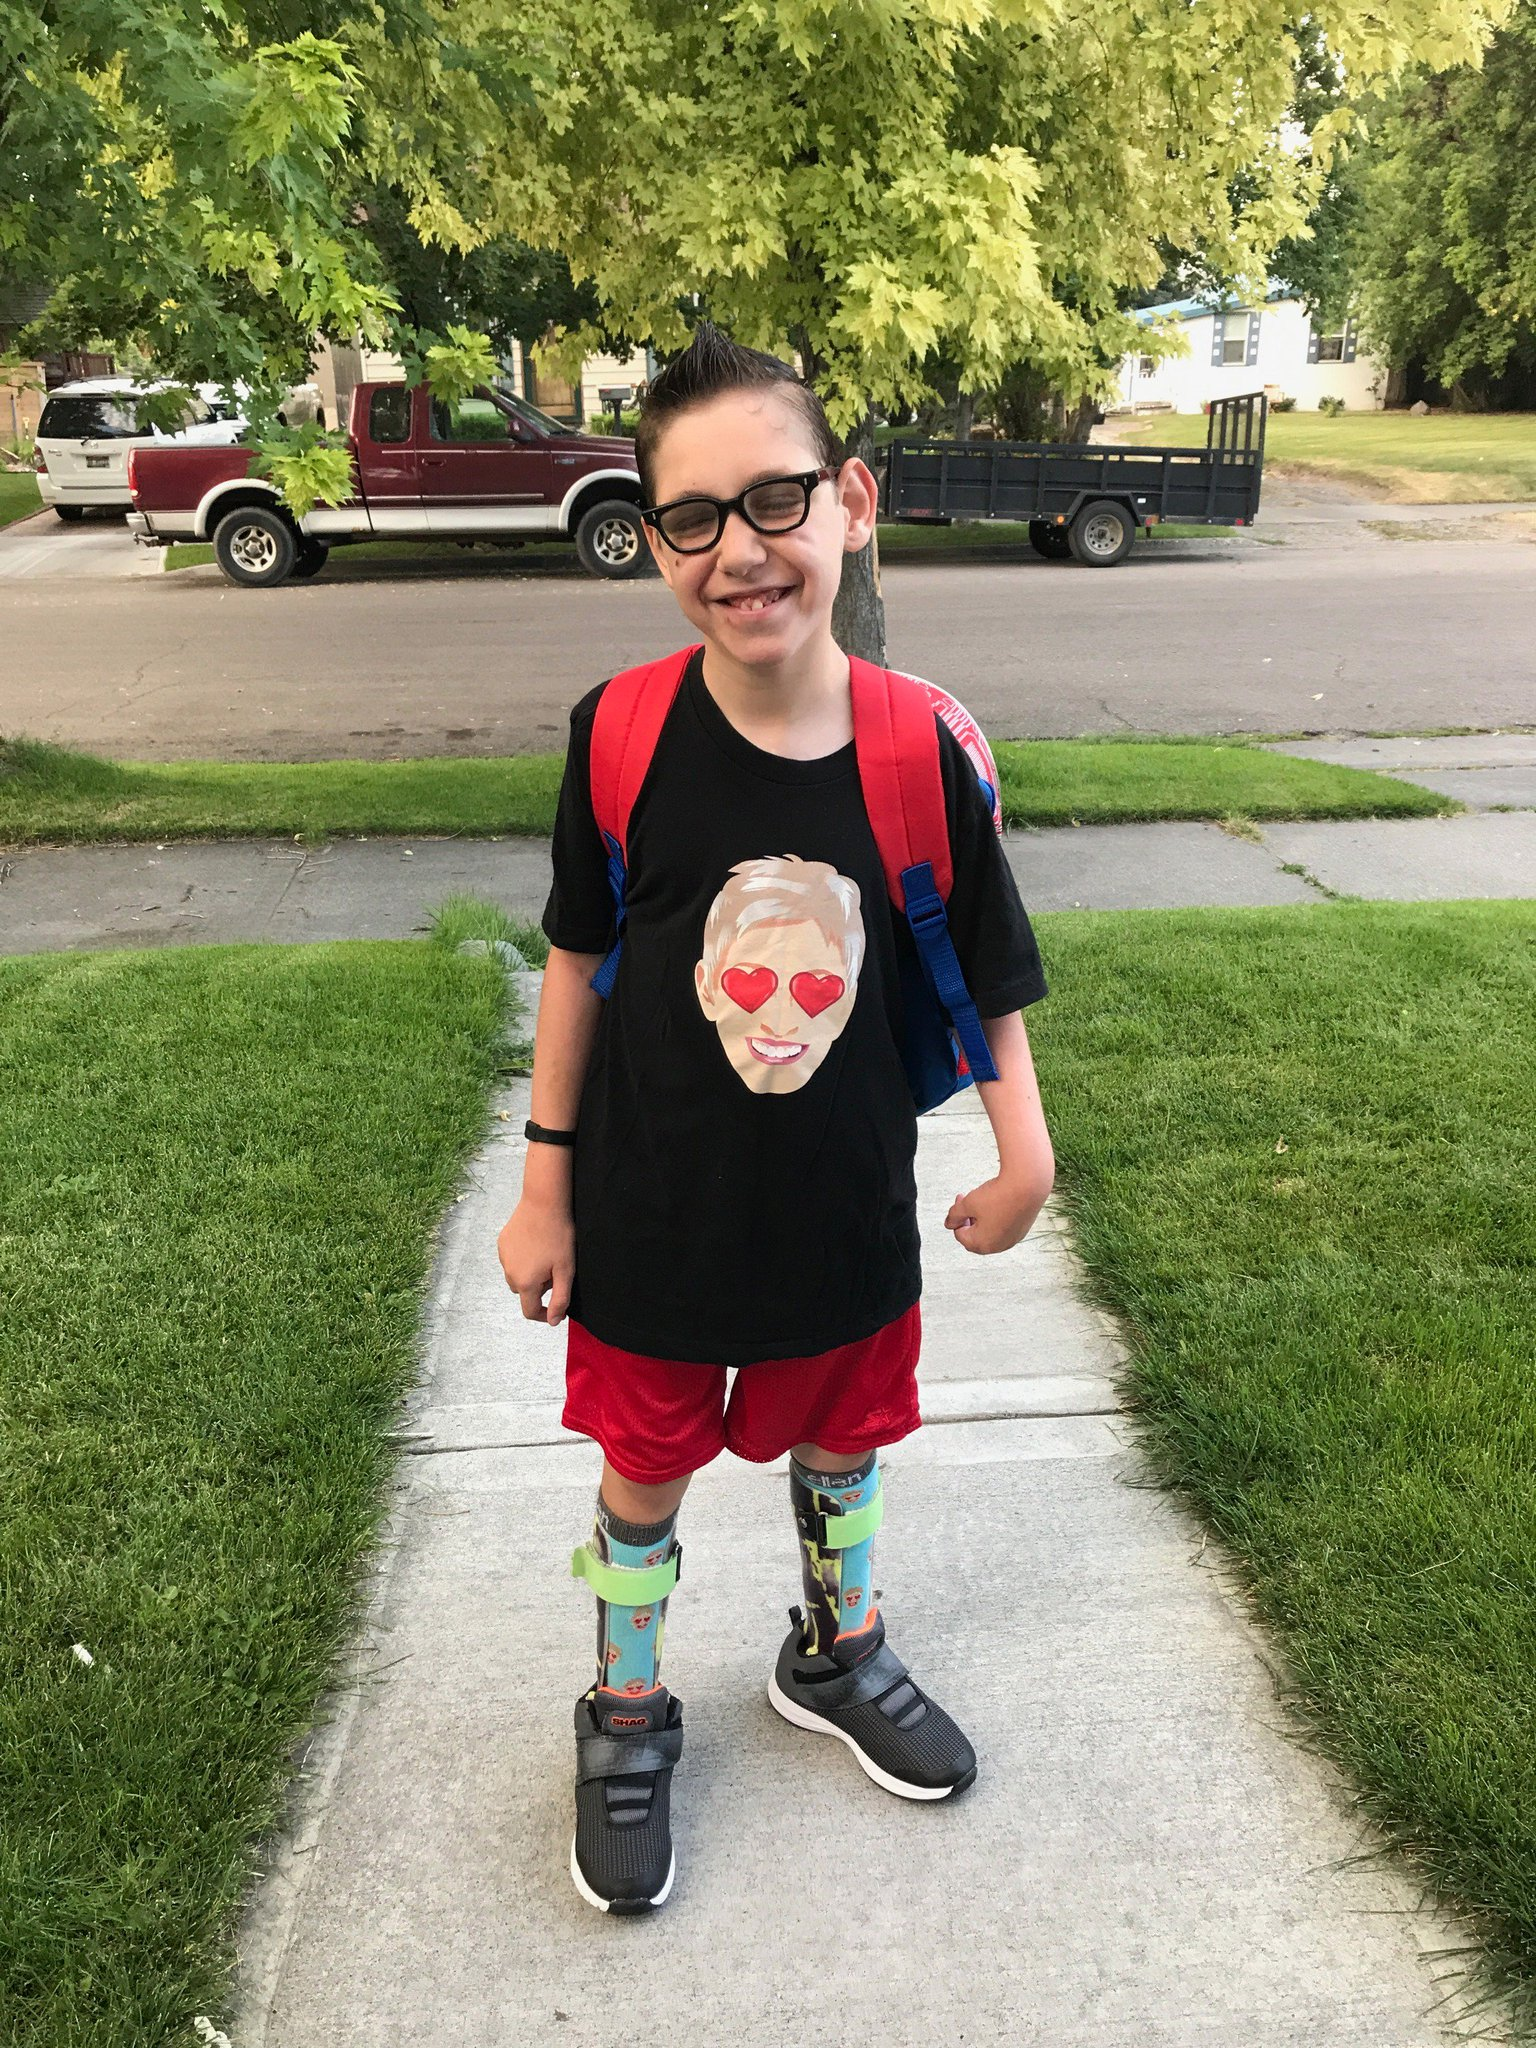 My boyfriend Tayt sent this to me from his first day of 5th grade. Tayt, I love you so much. https://t.co/ZRW5kAUWs5